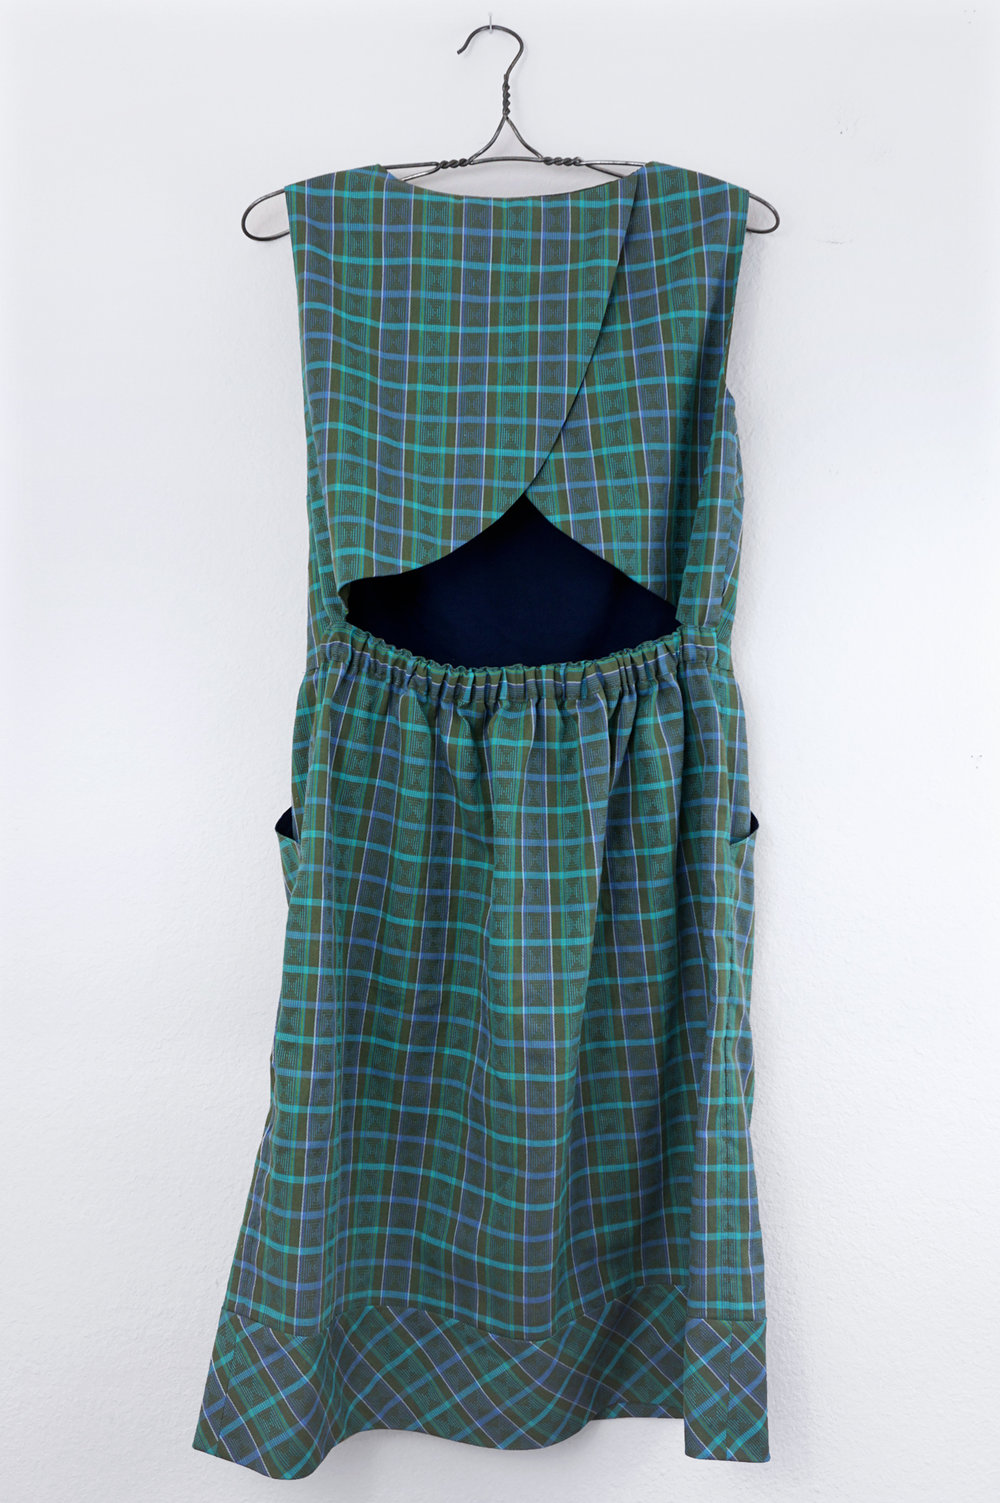 Plaid Cross Back Dress, review of sewing pattern Butterick B6351 | Sew DIY